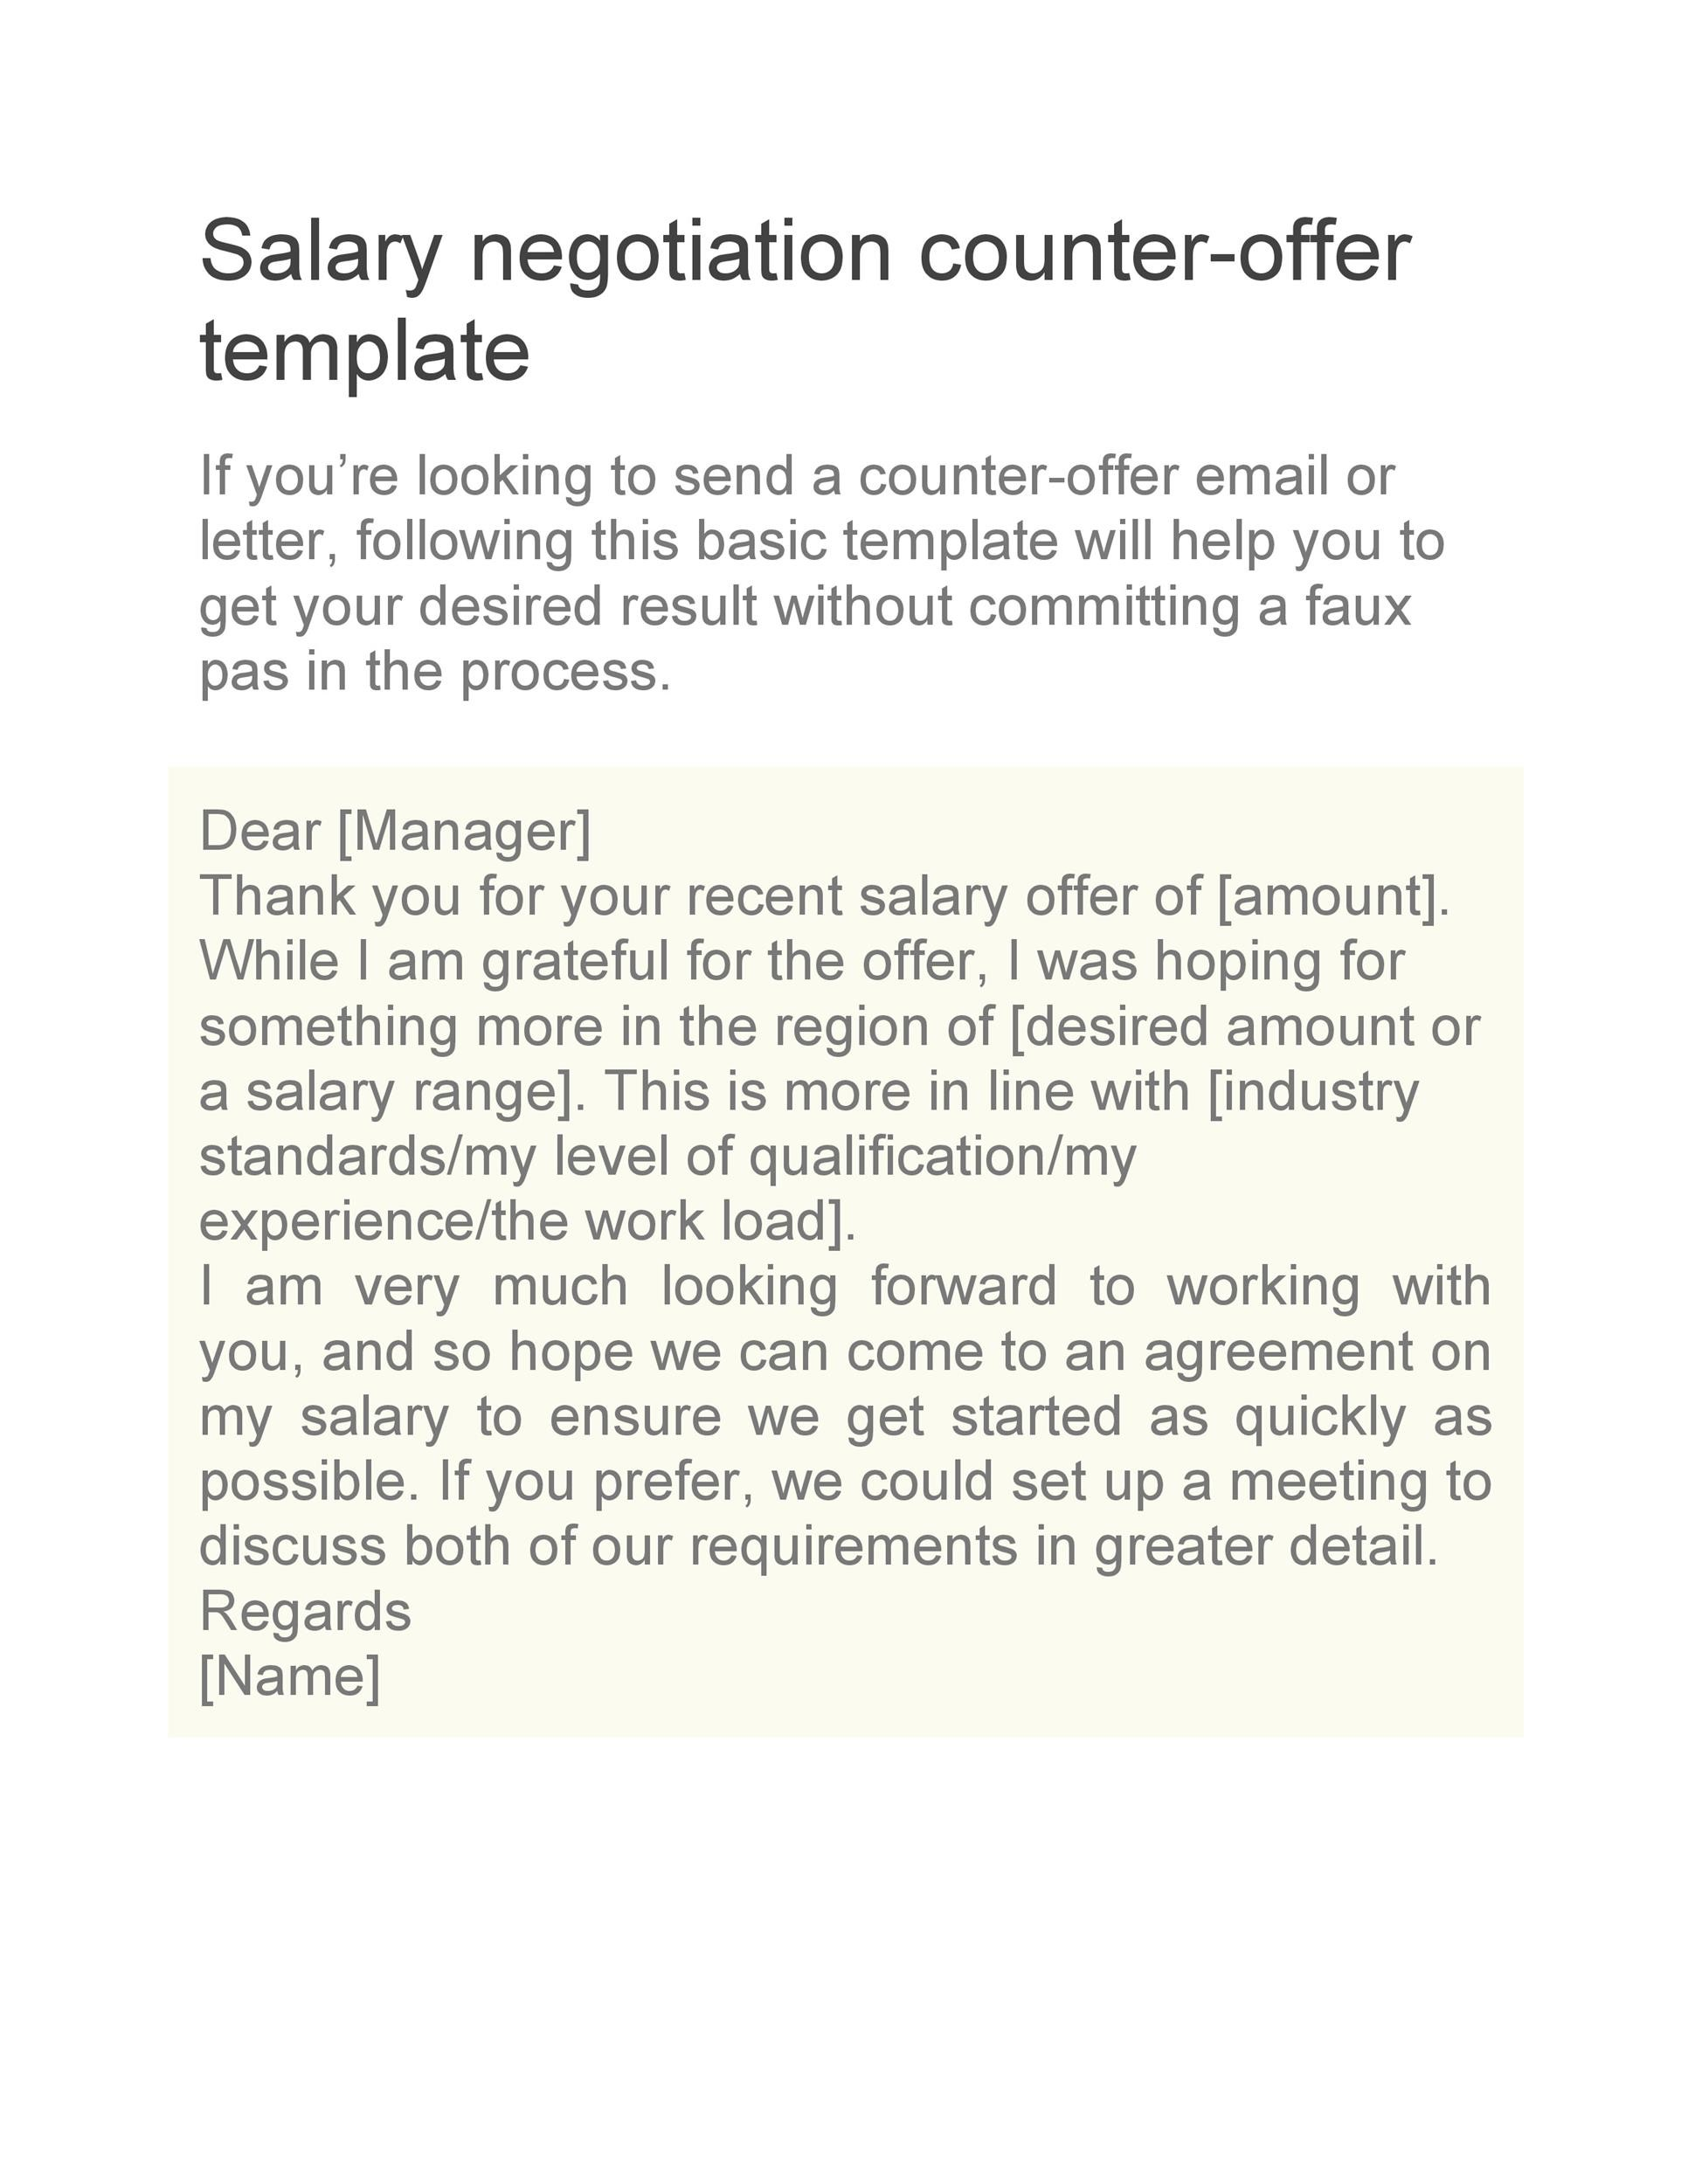 Negotiating Start Date Sample Letter from templatelab.com